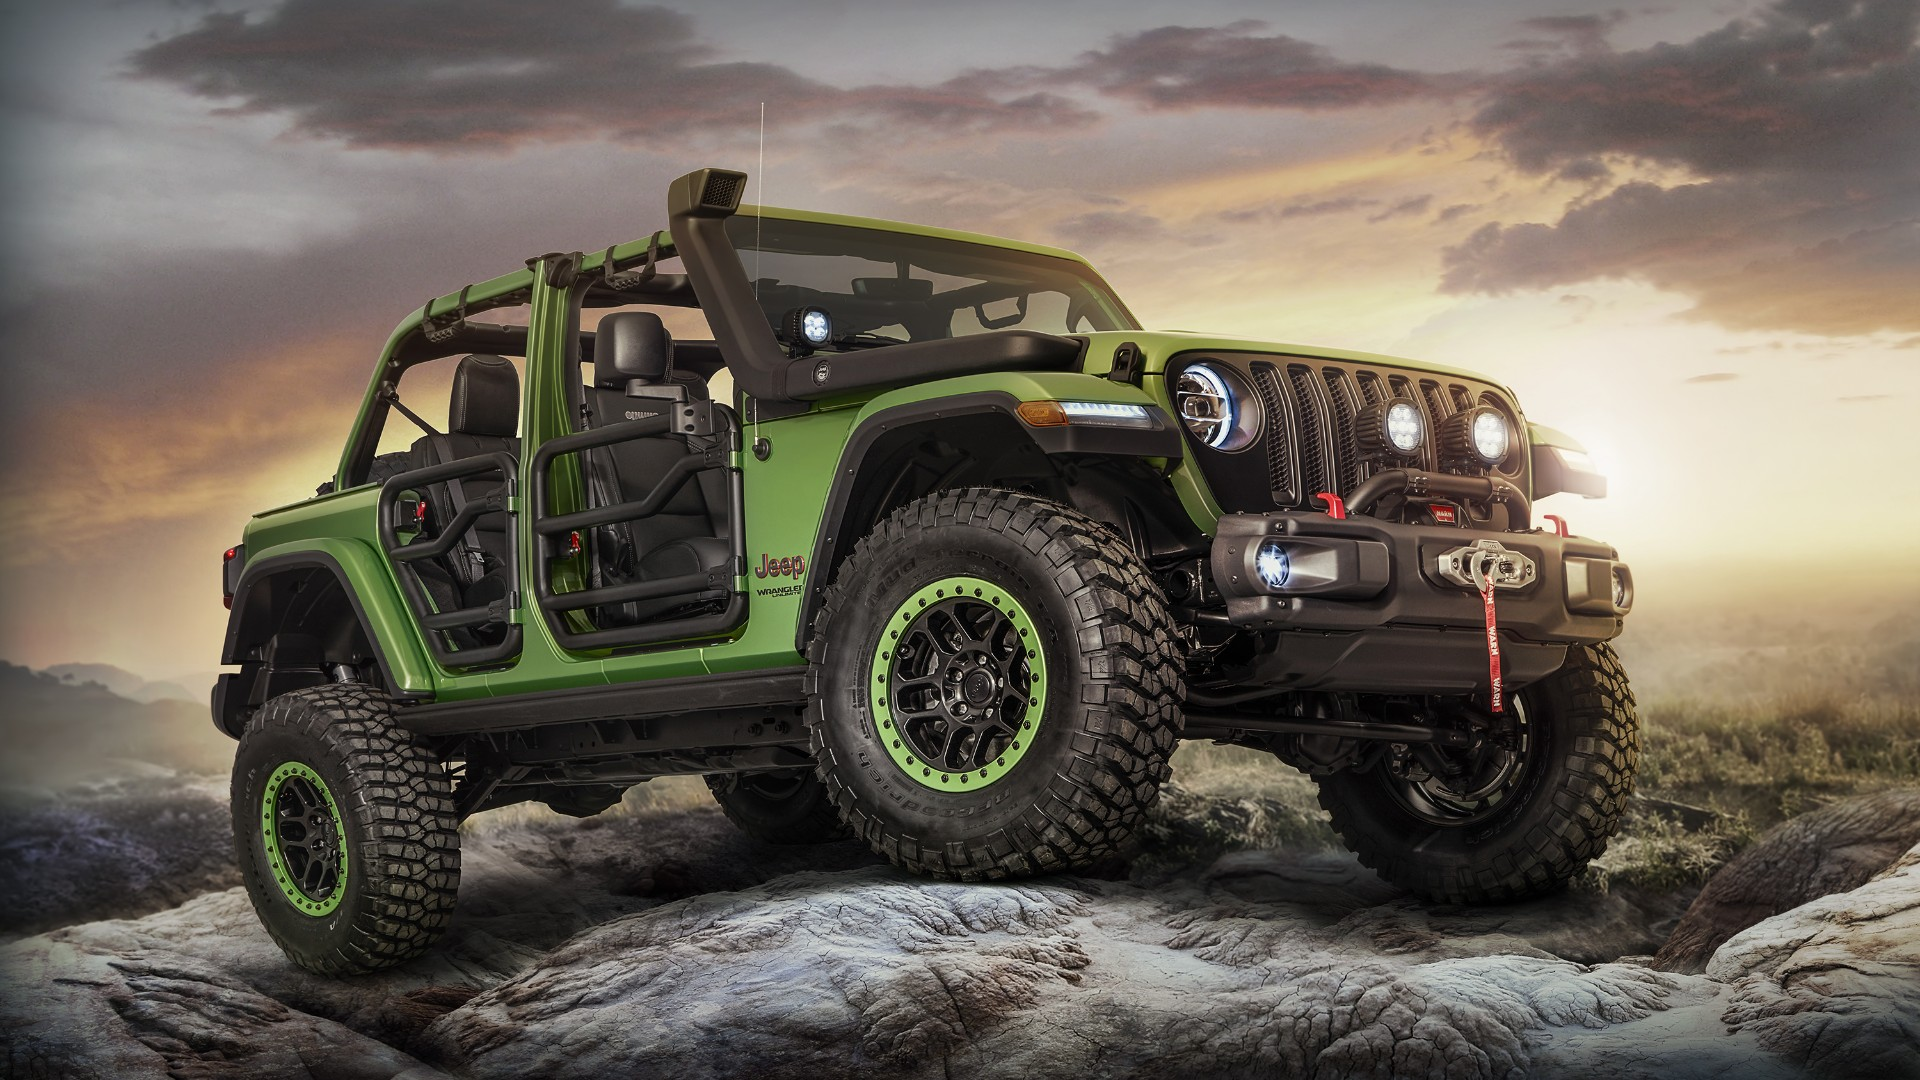 Jeep Wrangler Wallpapers and Background Images   stmednet 1920x1080